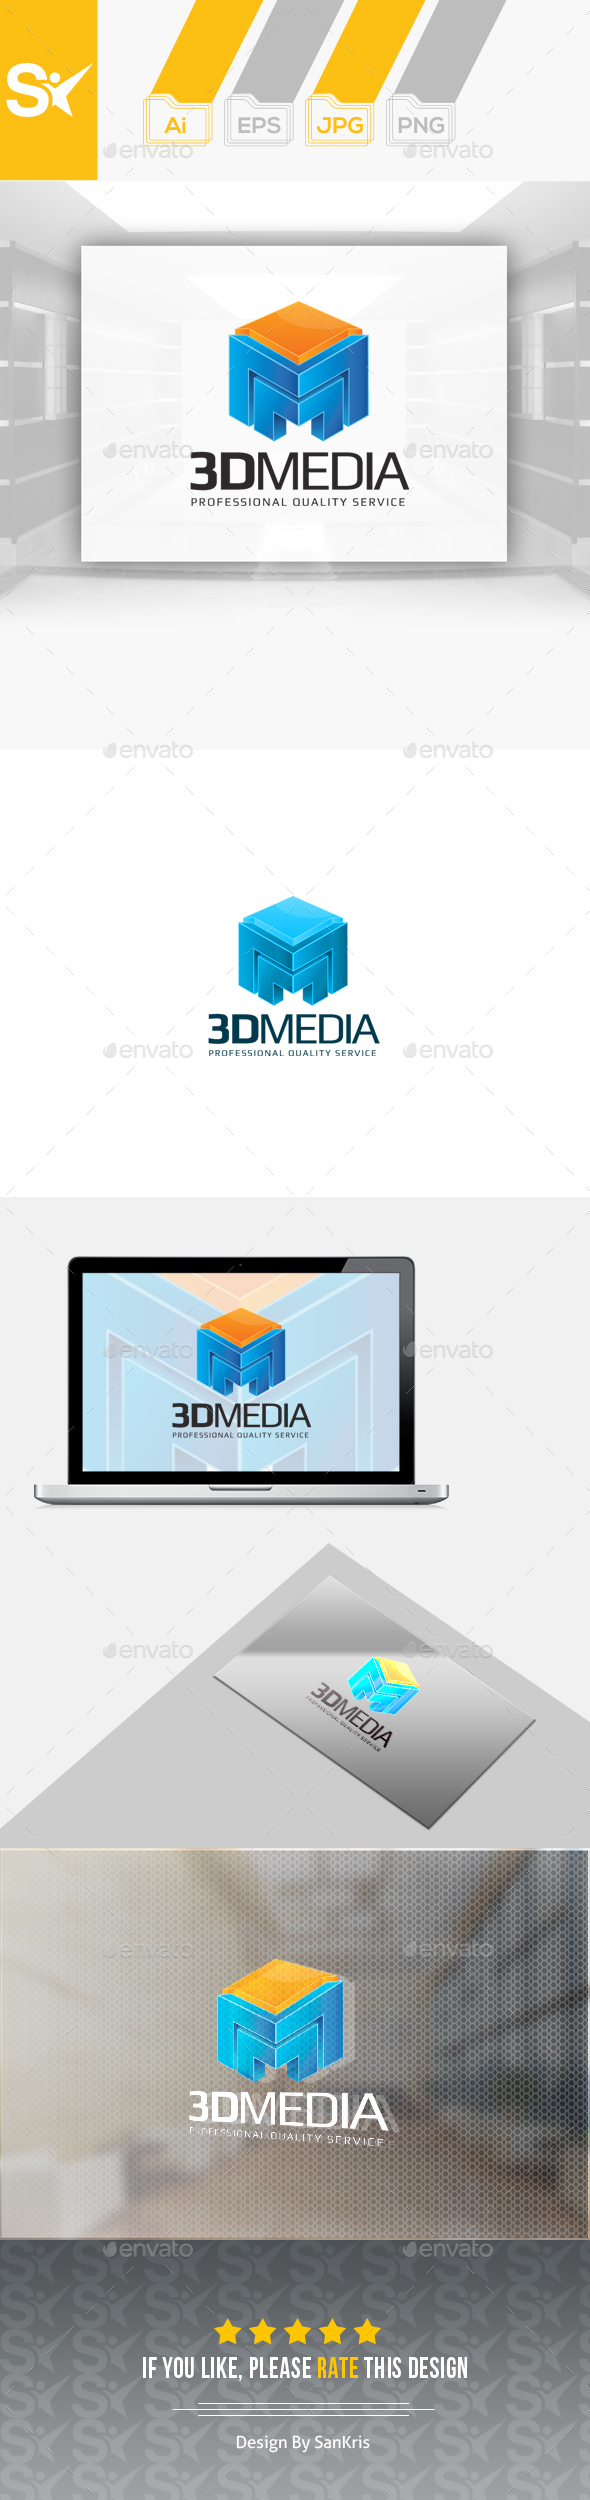 3D Media Logo - 3d Abstract